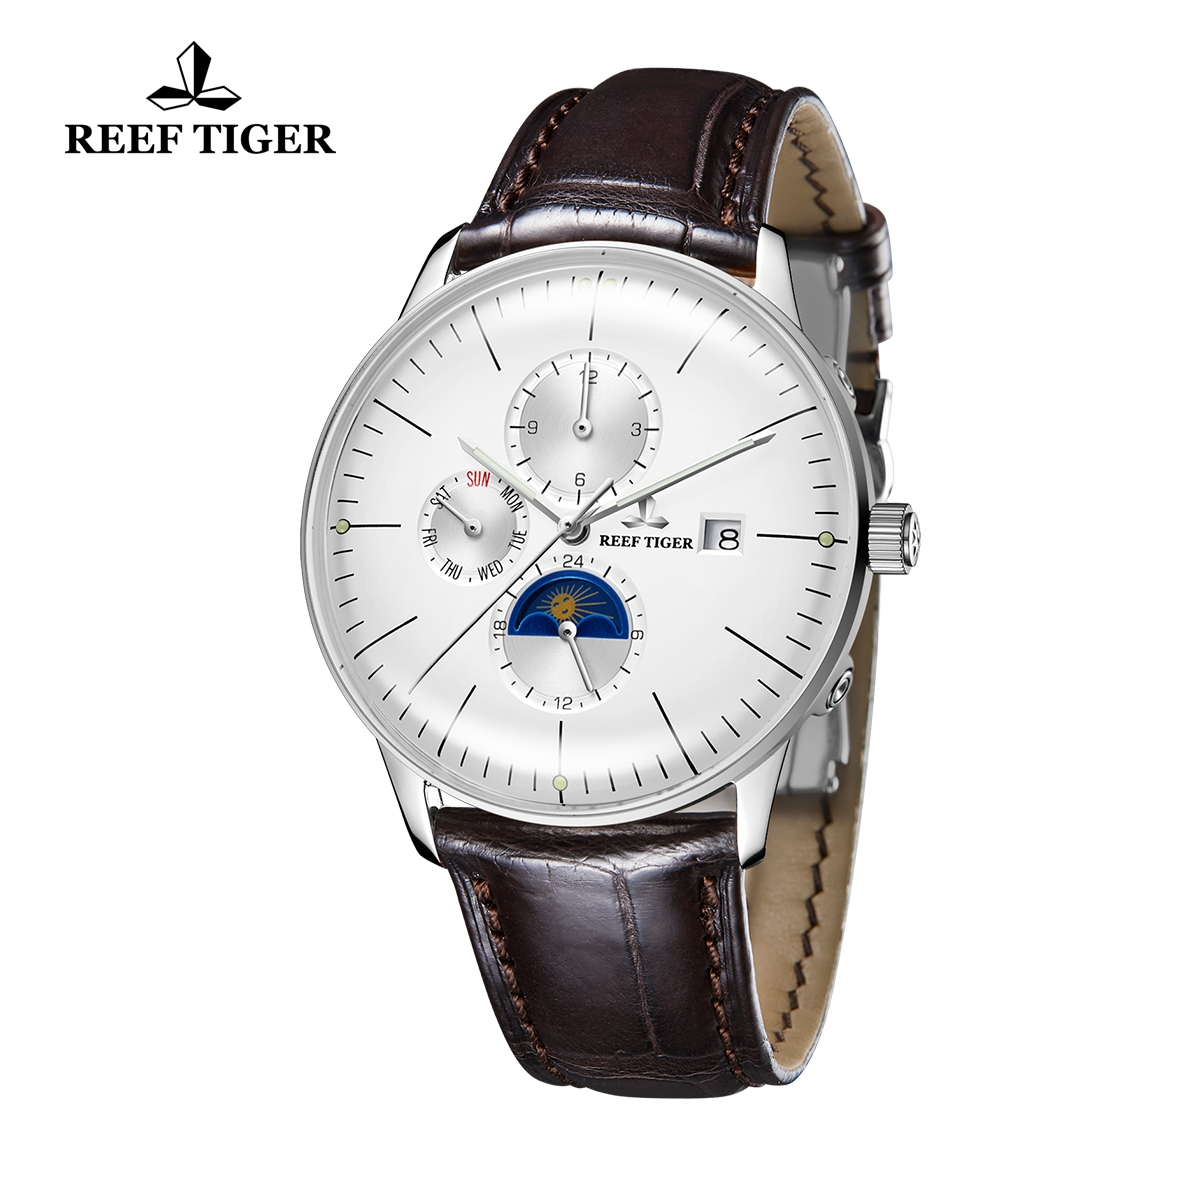 Reef Tiger Seattle Philosopher Classic Casual Watches Leather Strap Automatic Watch with Date Day For Men RGA1653-YWS